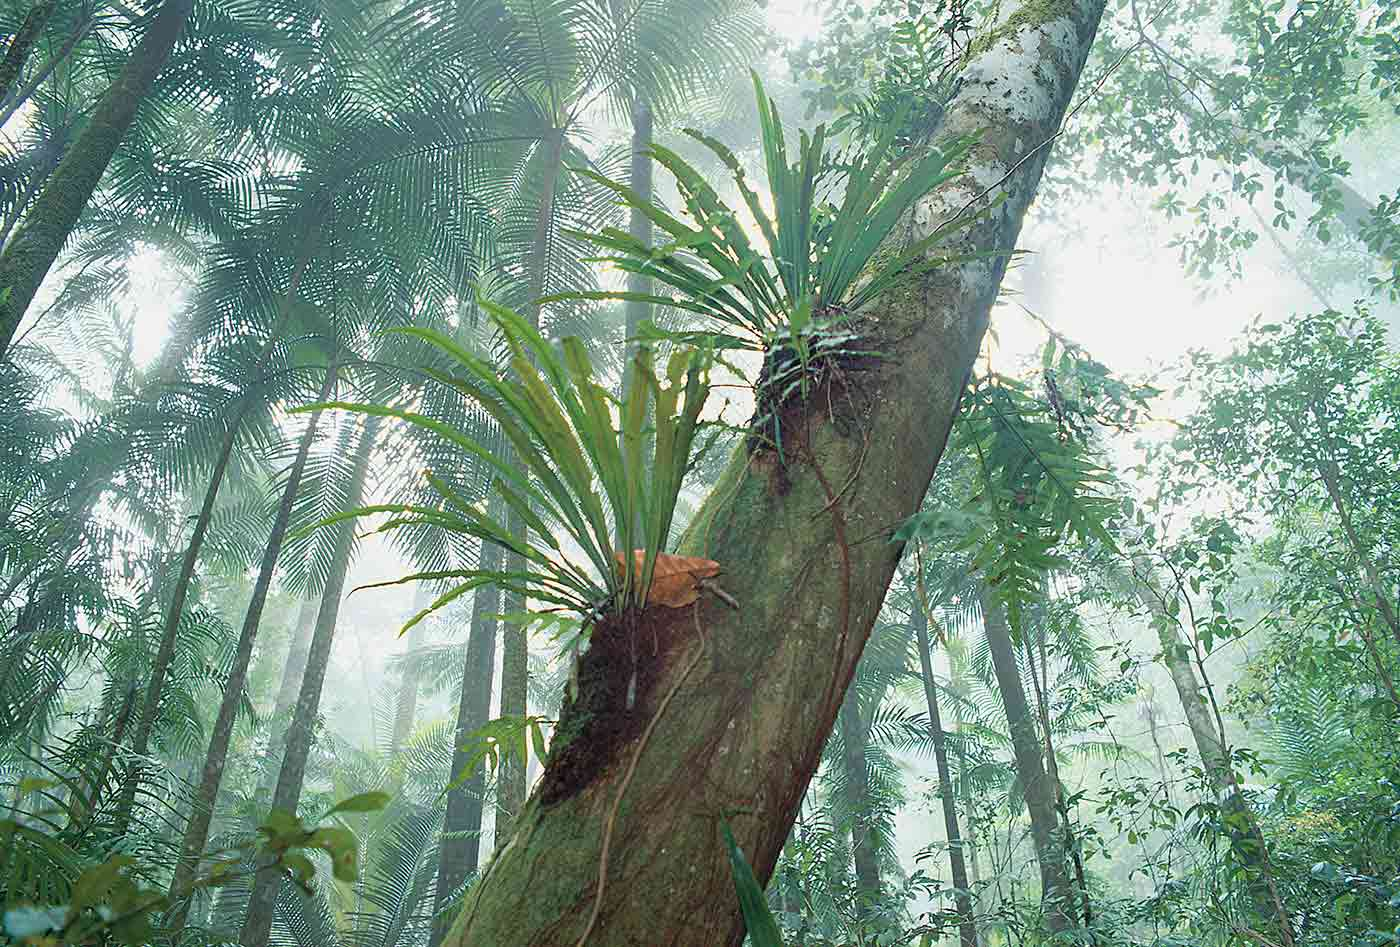 A closeup photo of tall tropical rainforest trees. The closest tree has two large leafy plants growing on its trunk. The atmosphere looks steamy.